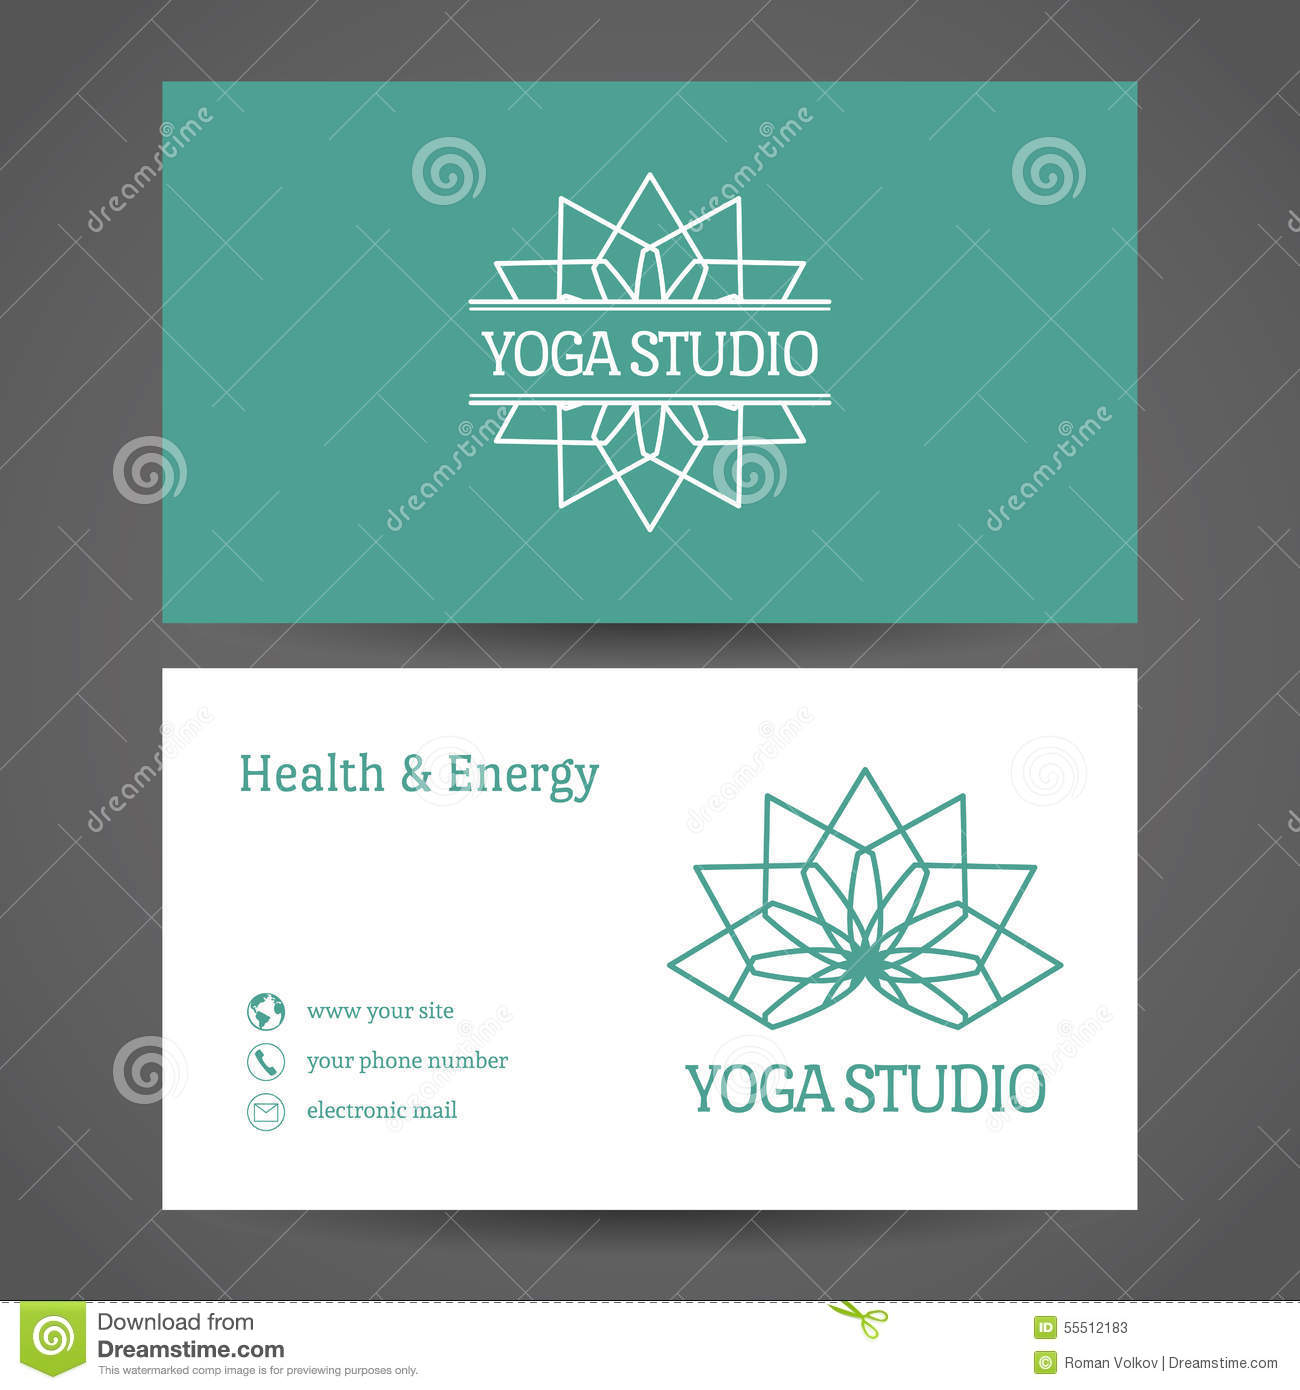 Yoga Studio Vector Business Card Template Stock Vector ...